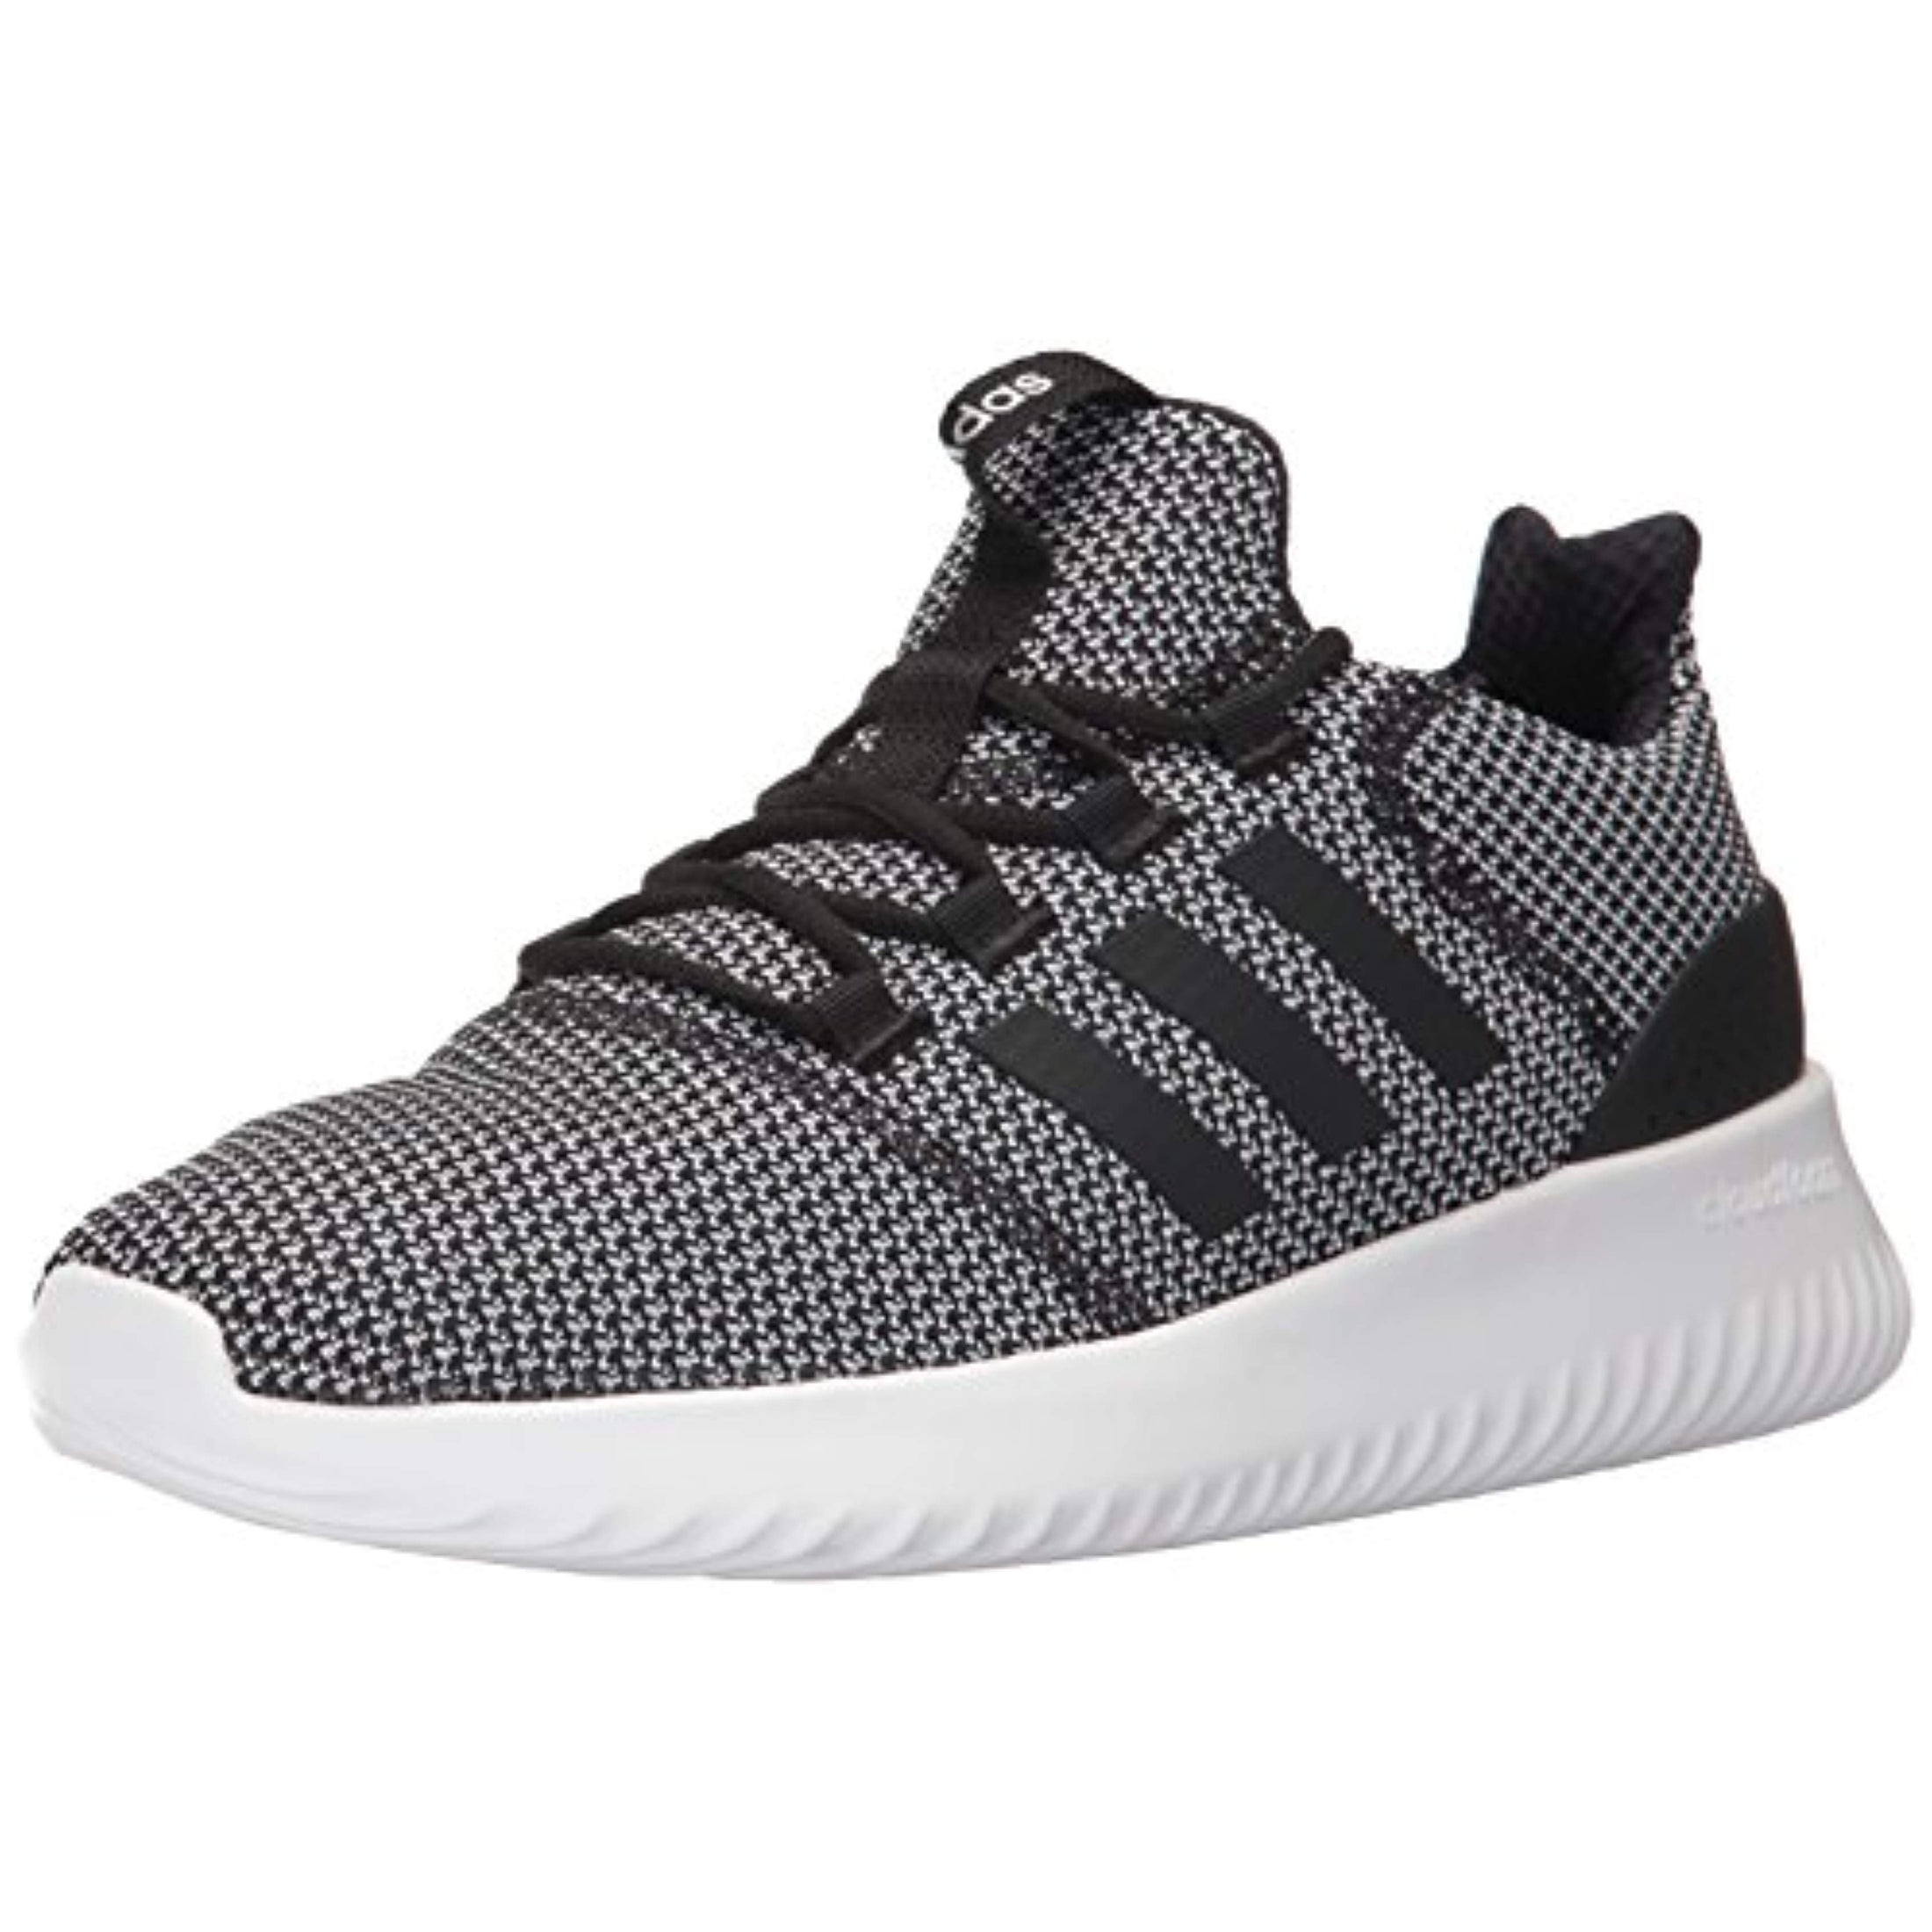 new arrival 99511 88959 Shop Adidas Men s Cloudfoam Ultimate Running Shoe - Free Shipping Today -  Overstock - 26966130